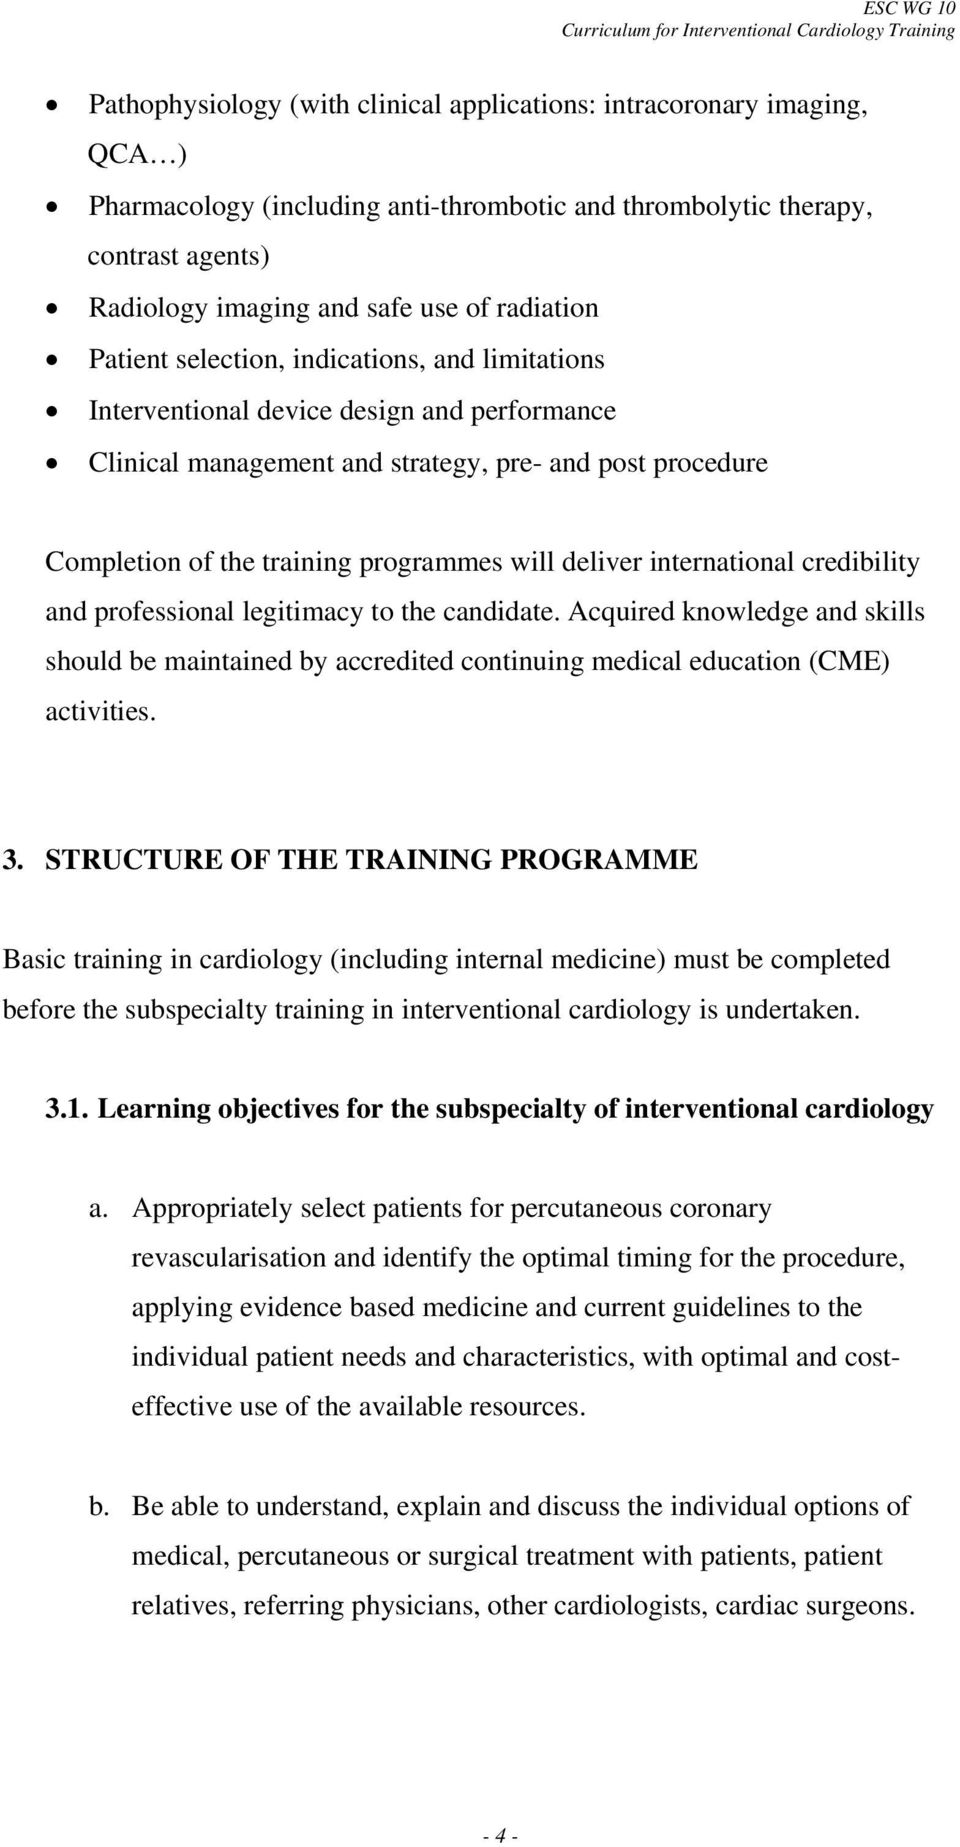 will deliver international credibility and professional legitimacy to the candidate. Acquired knowledge and skills should be maintained by accredited continuing medical education (CME) activities. 3.